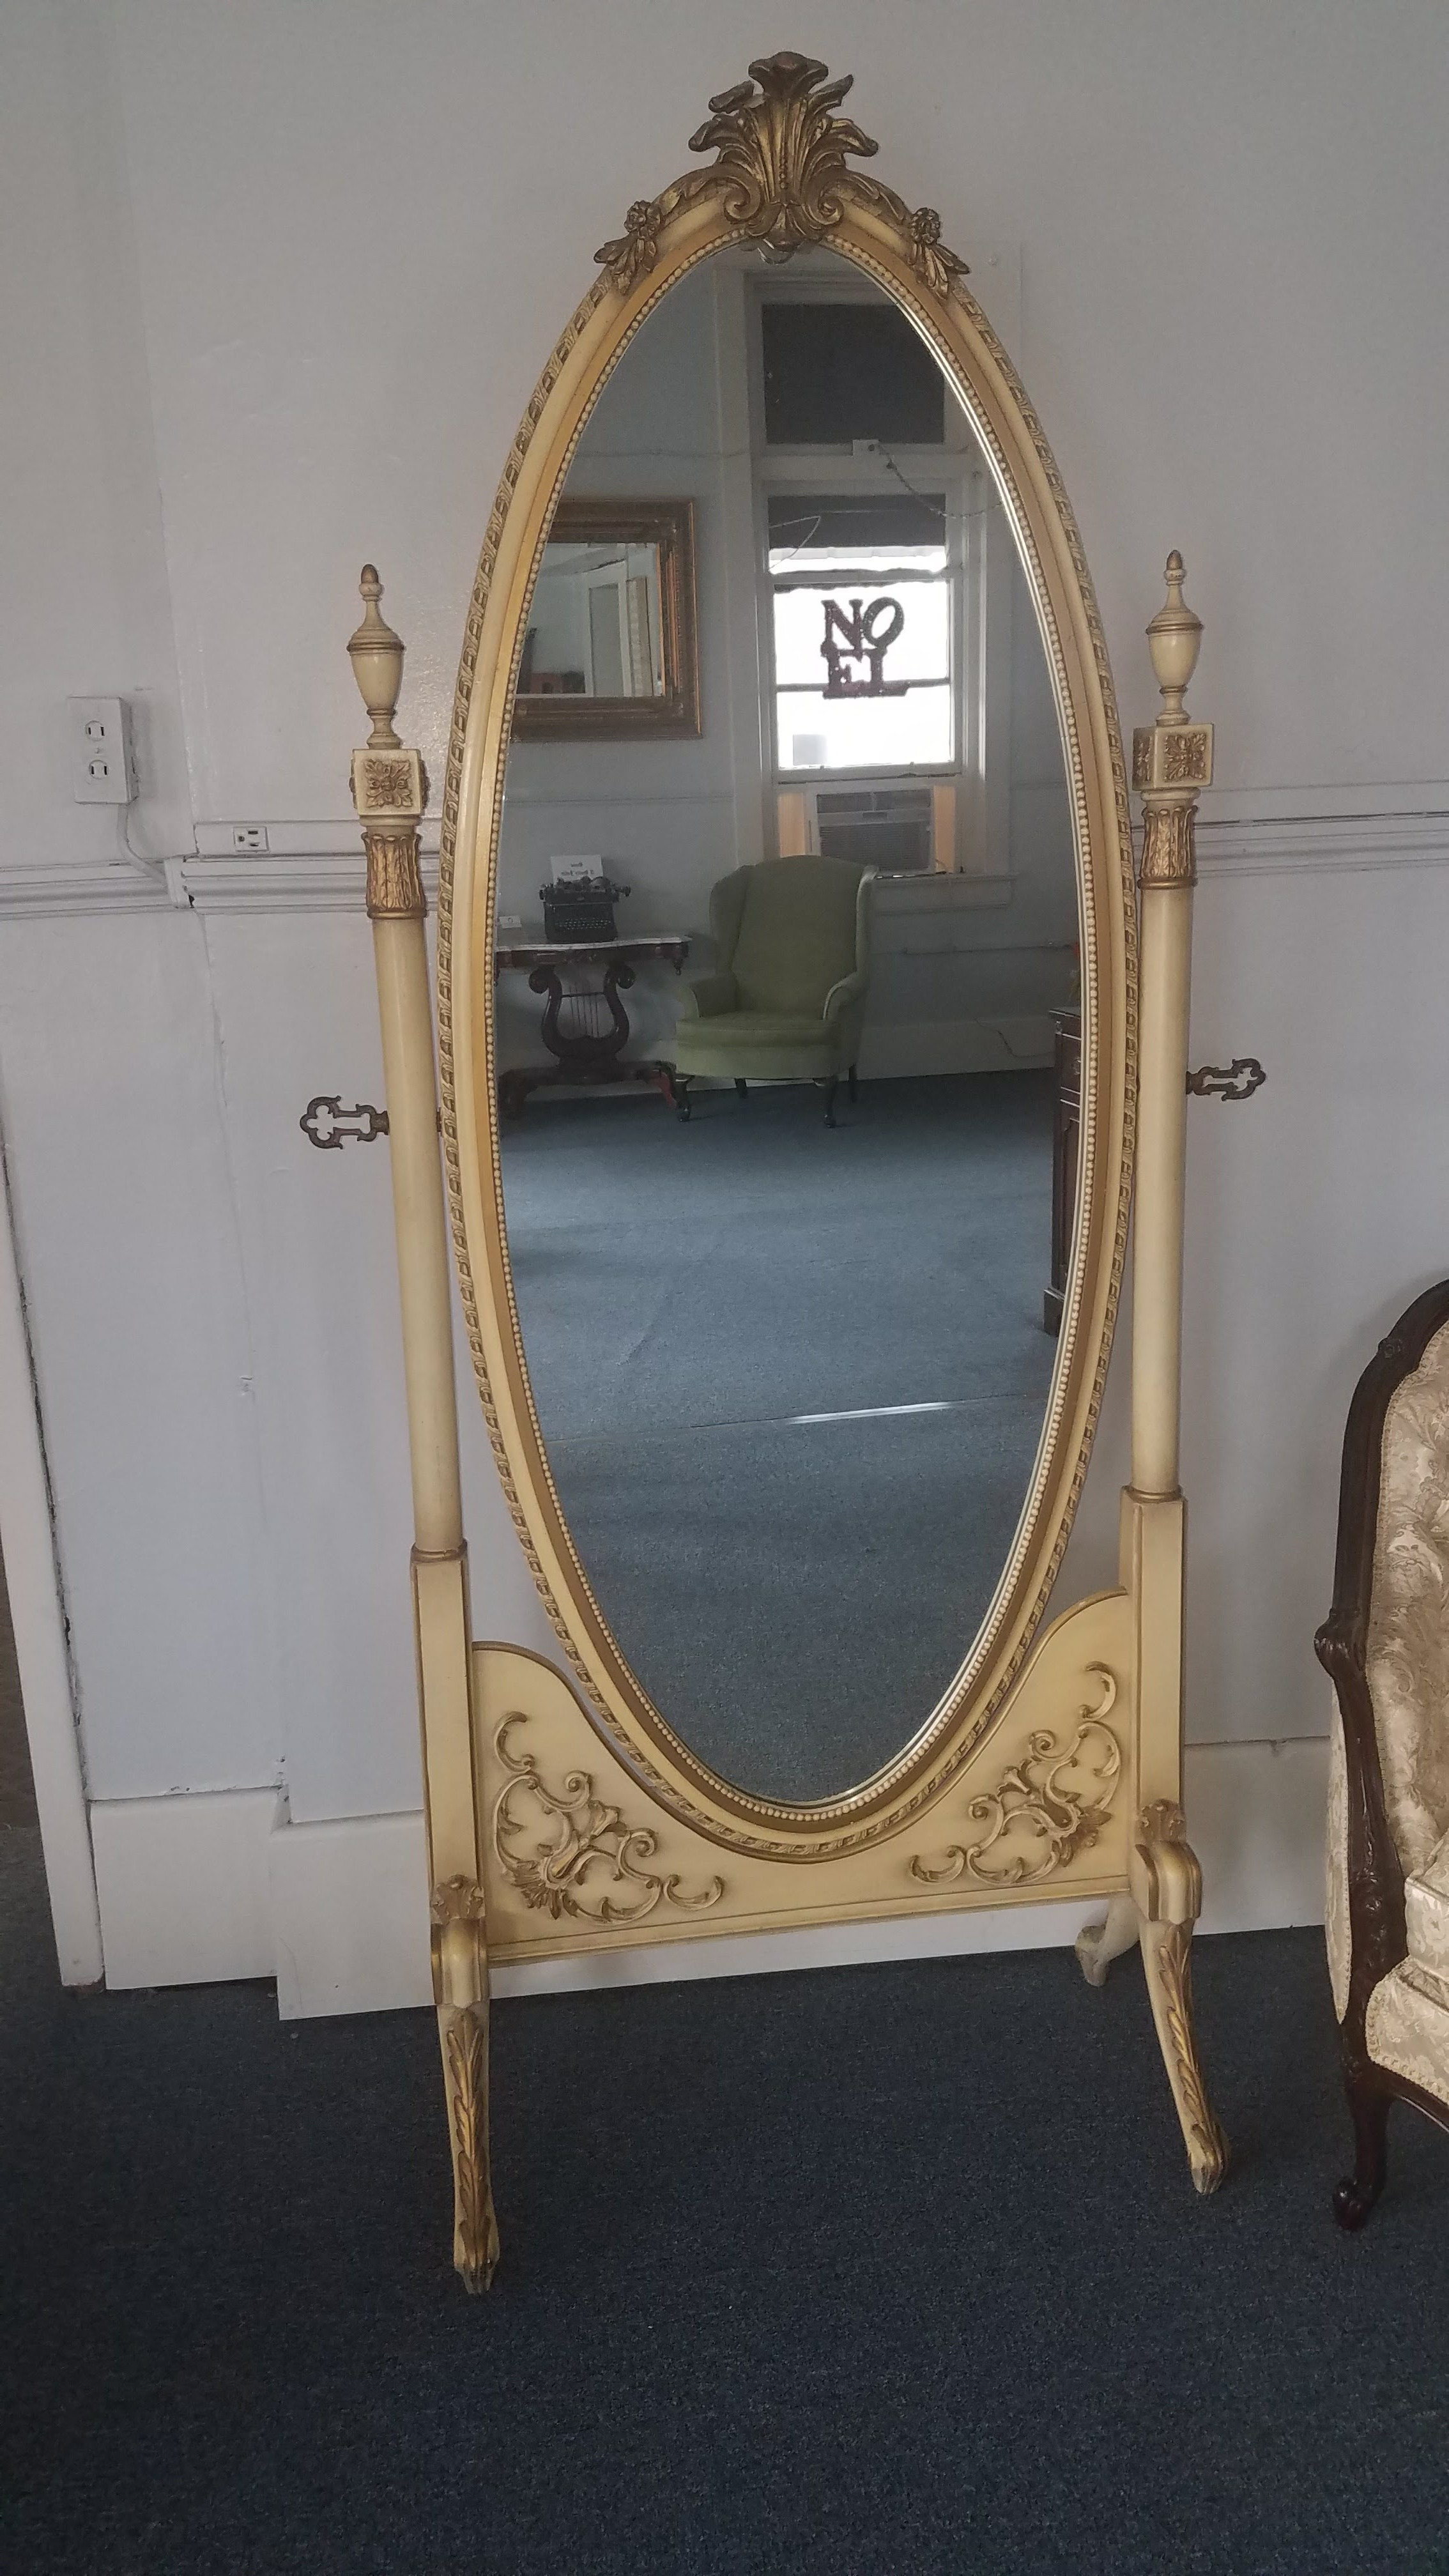 French Provincial Mirror $40 / Day